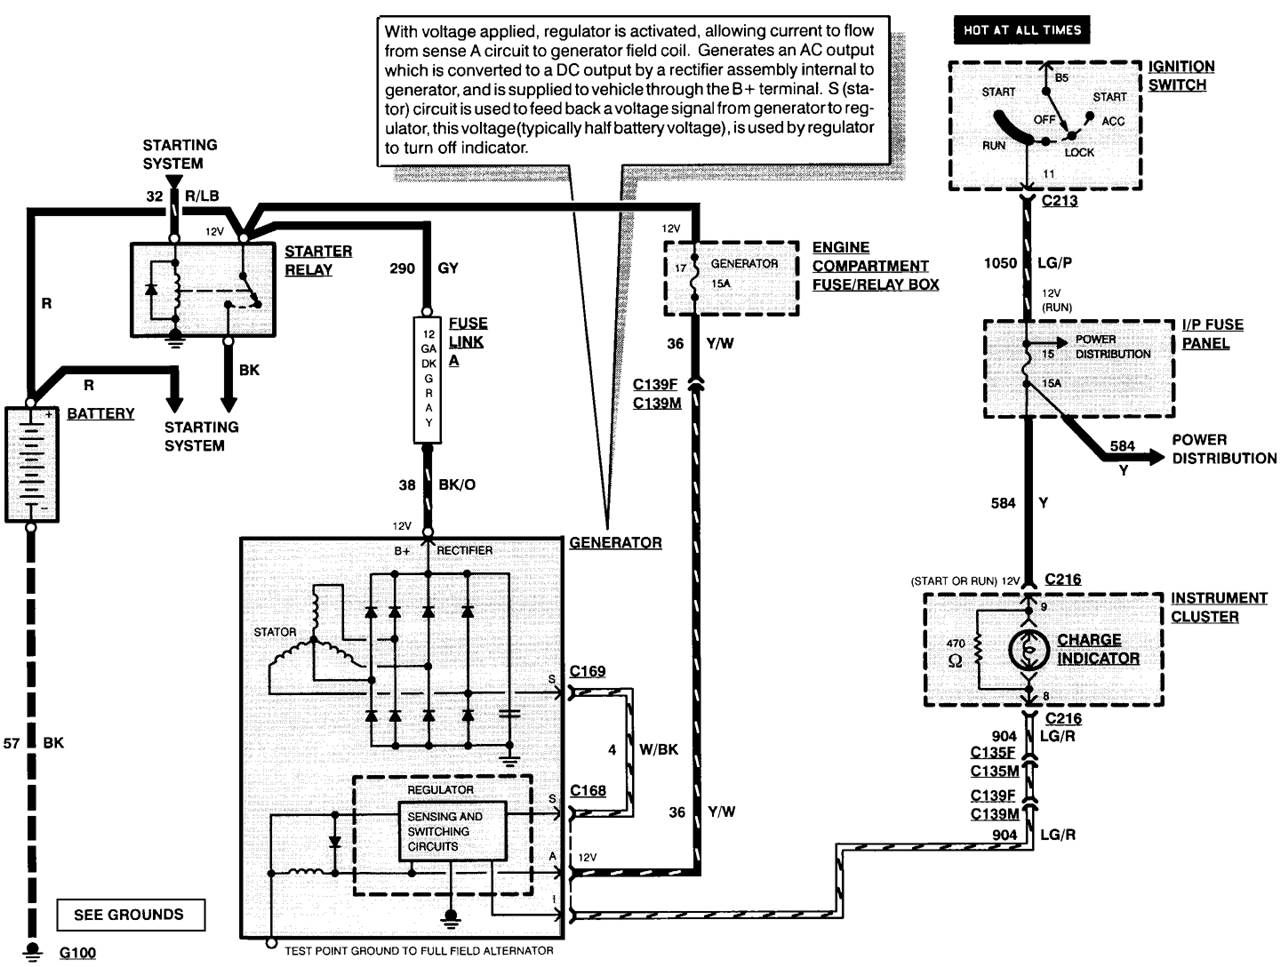 Ford alternator wiring diagram internal regulator ford alternator wiring diagrams carsut understand cars and ford alternator wiring diagram internal regulator at bayanpartner.co